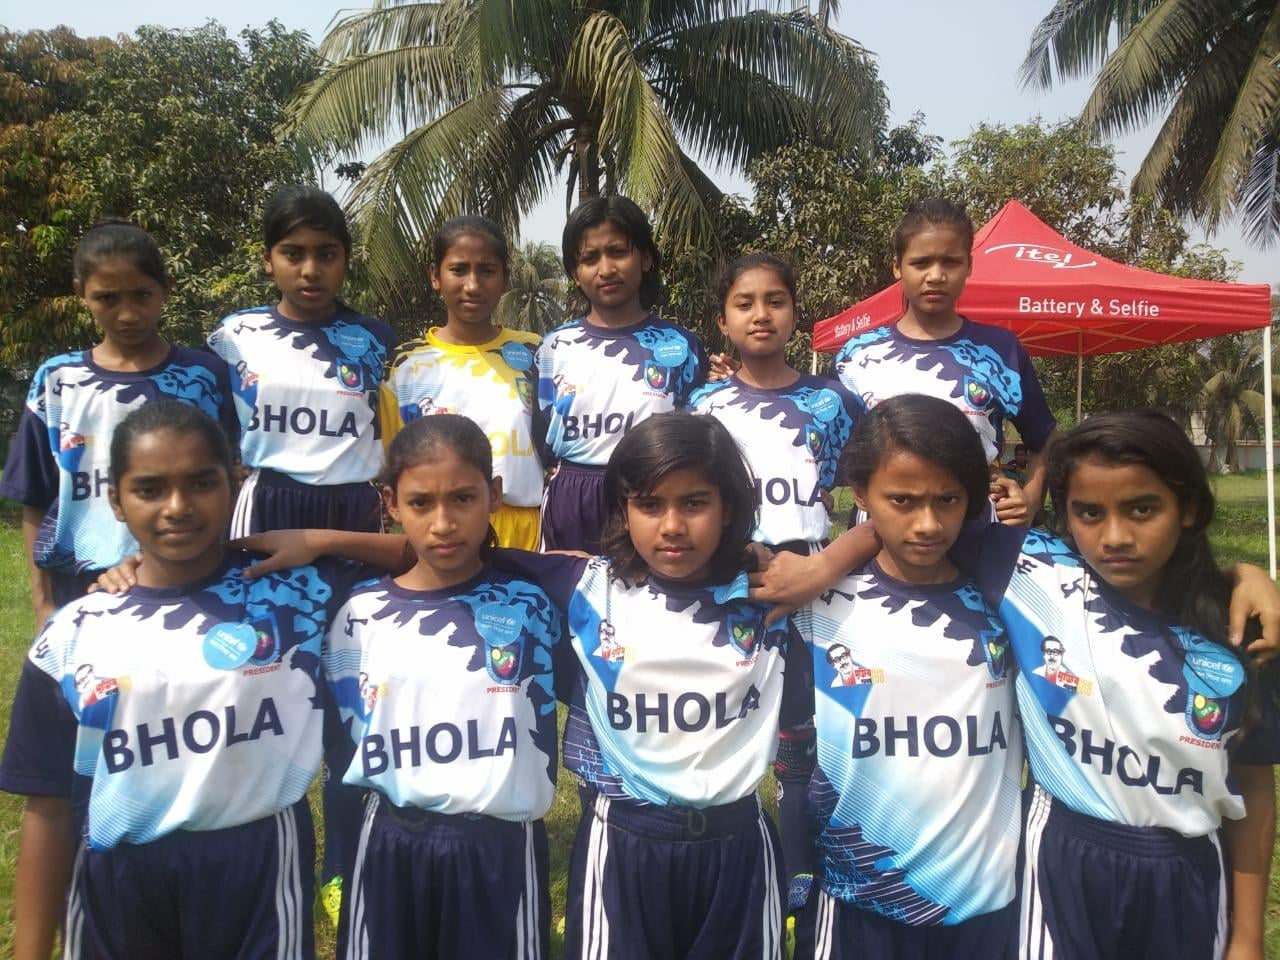 Magura district defeated Bhola district